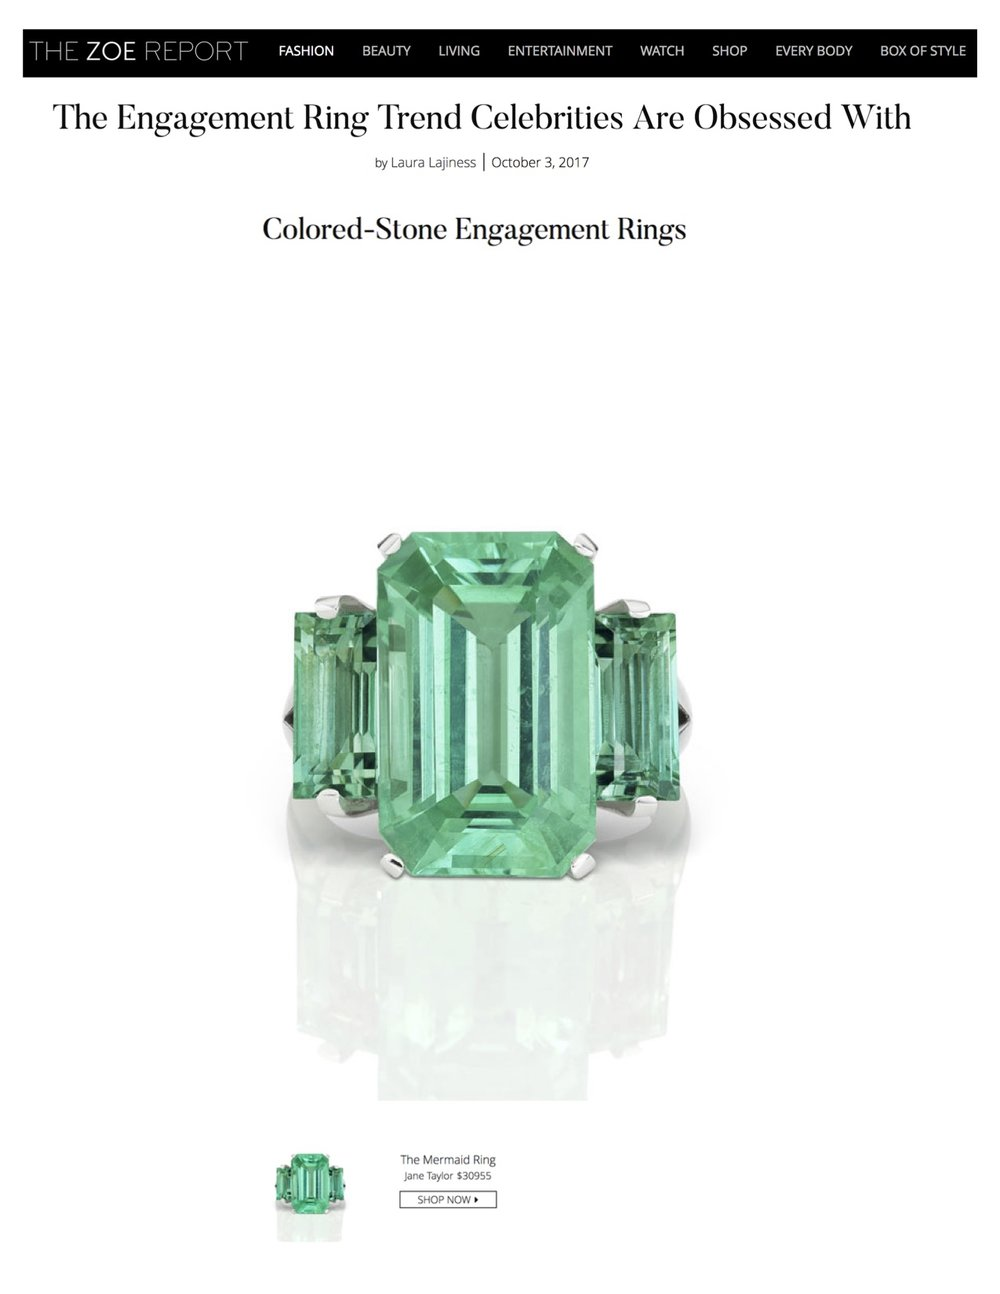 Jane Taylor Cirque Mermaid Ring on The Zoe Report